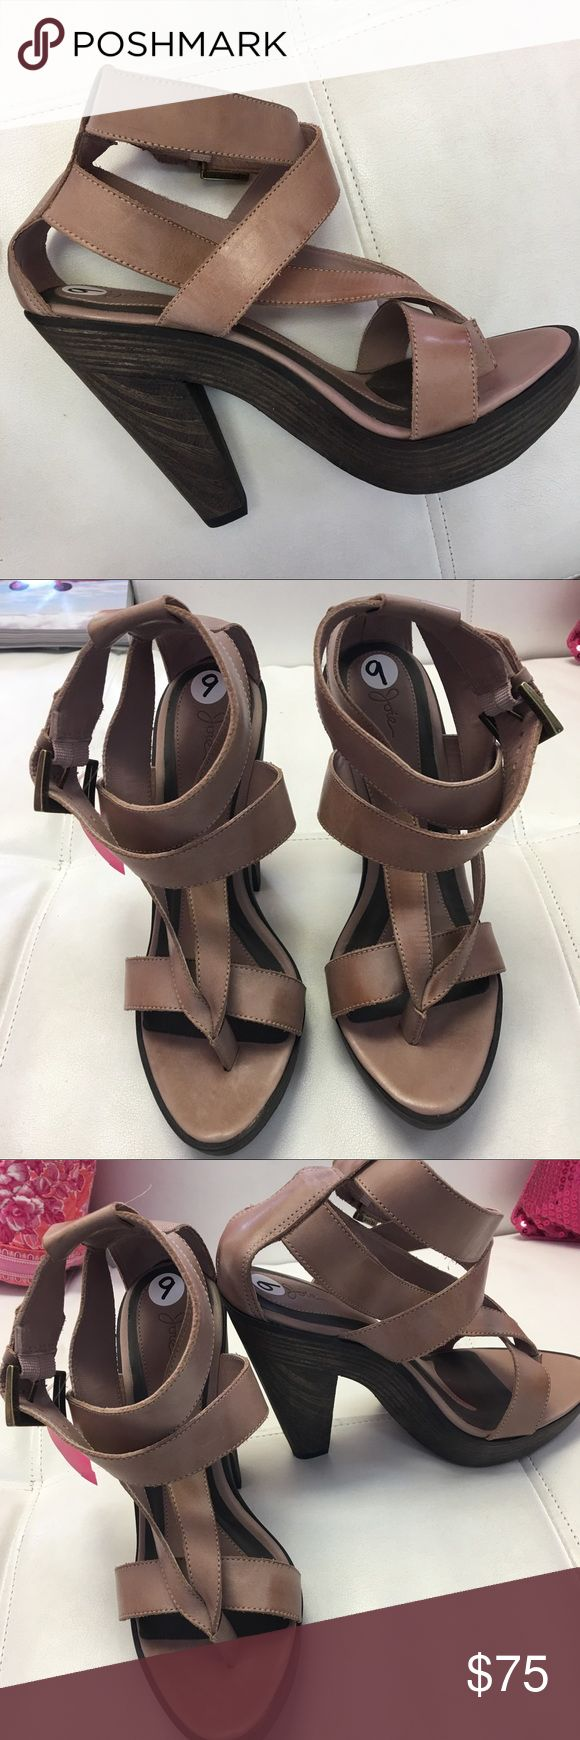 "JOIE Taupe Strappy Leather Heels Very nice wide leather straps. Excellent Condition! 4"" wooden sandal heel. 9 medium Joie Shoes Heels"